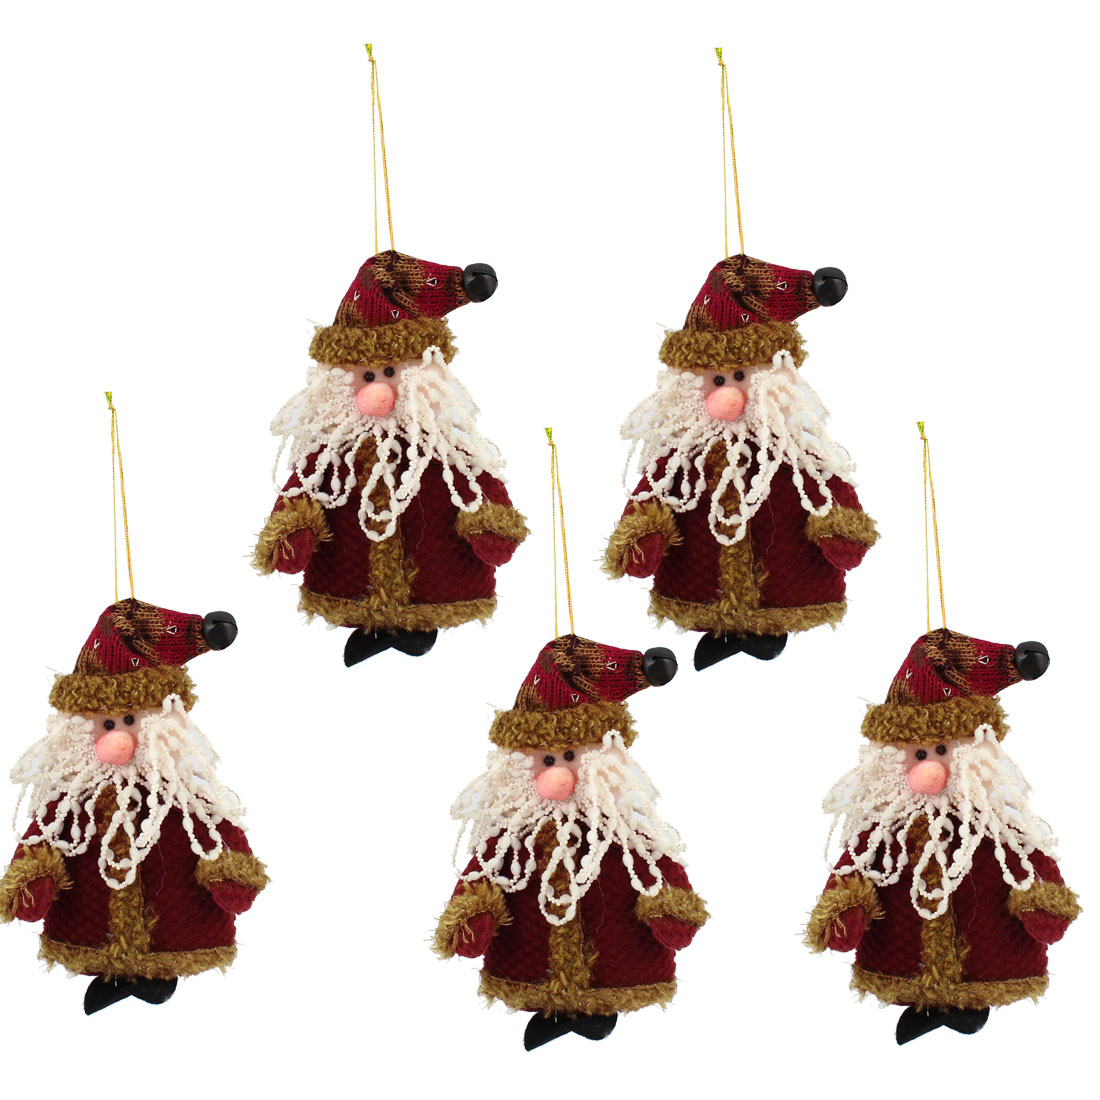 Bell Cap Accent Xmas Santa Claus Pendant 5pcs for Door Christmas Tree Hanging Decor